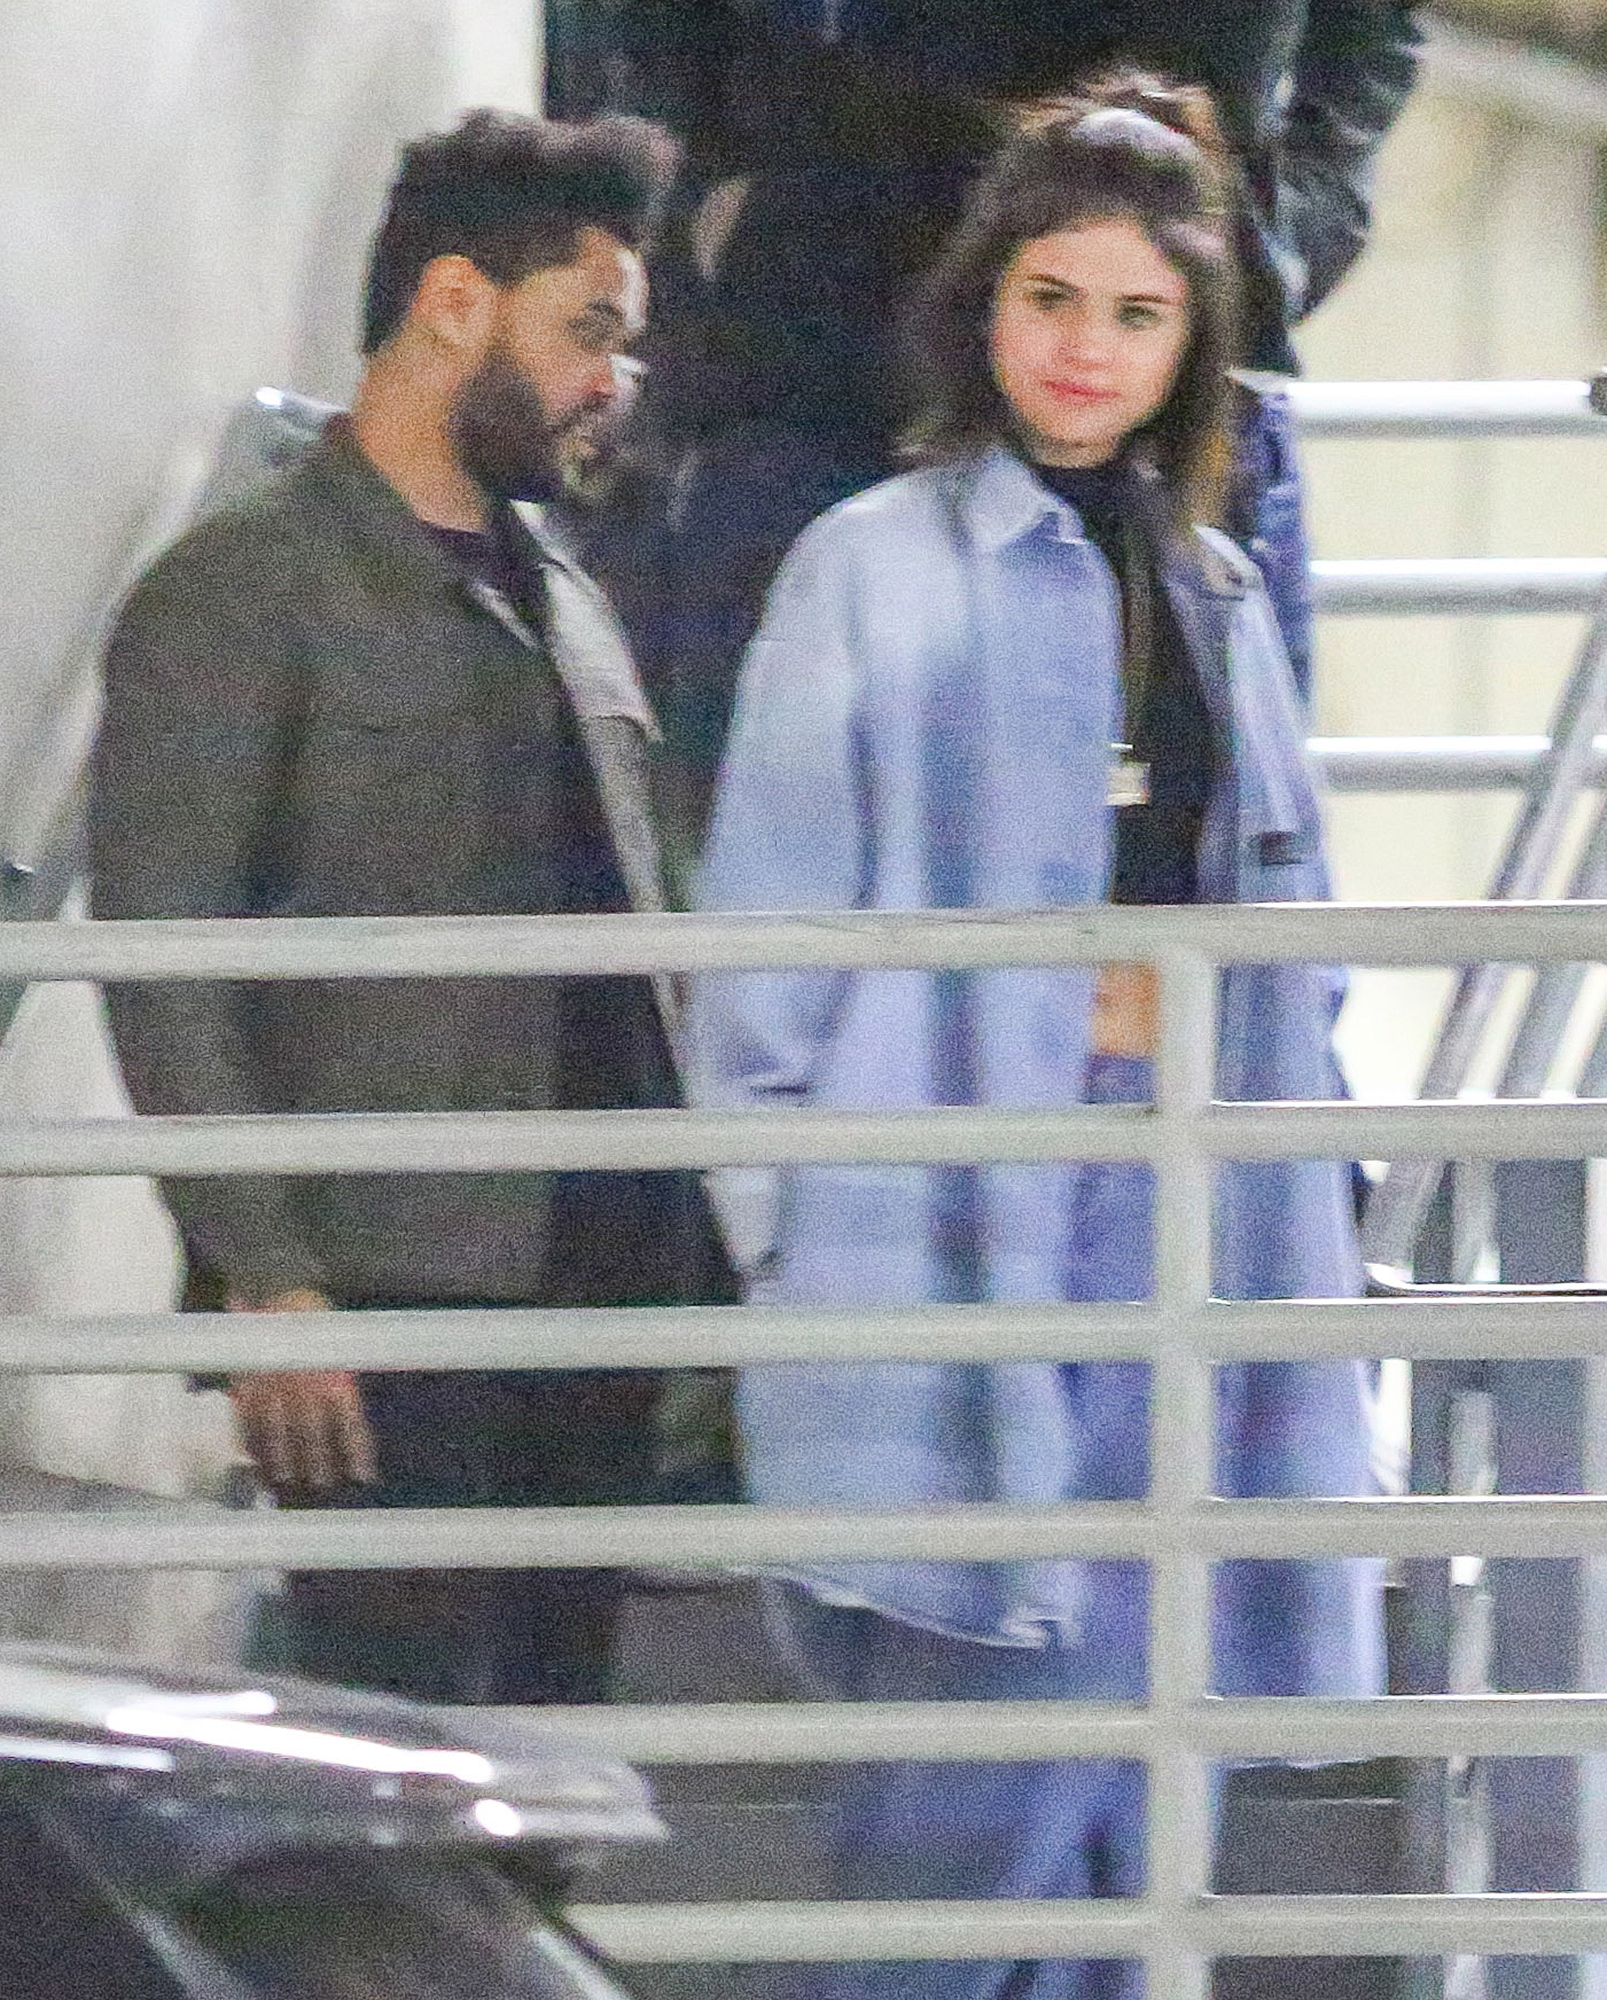 *PREMIUM EXCLUSIVE* Selena Gomez and The Weeknd leave Dave and Buster's Date Night **WEB EMBARGO UNTIL 9:30AM PST ON 01/27/17**